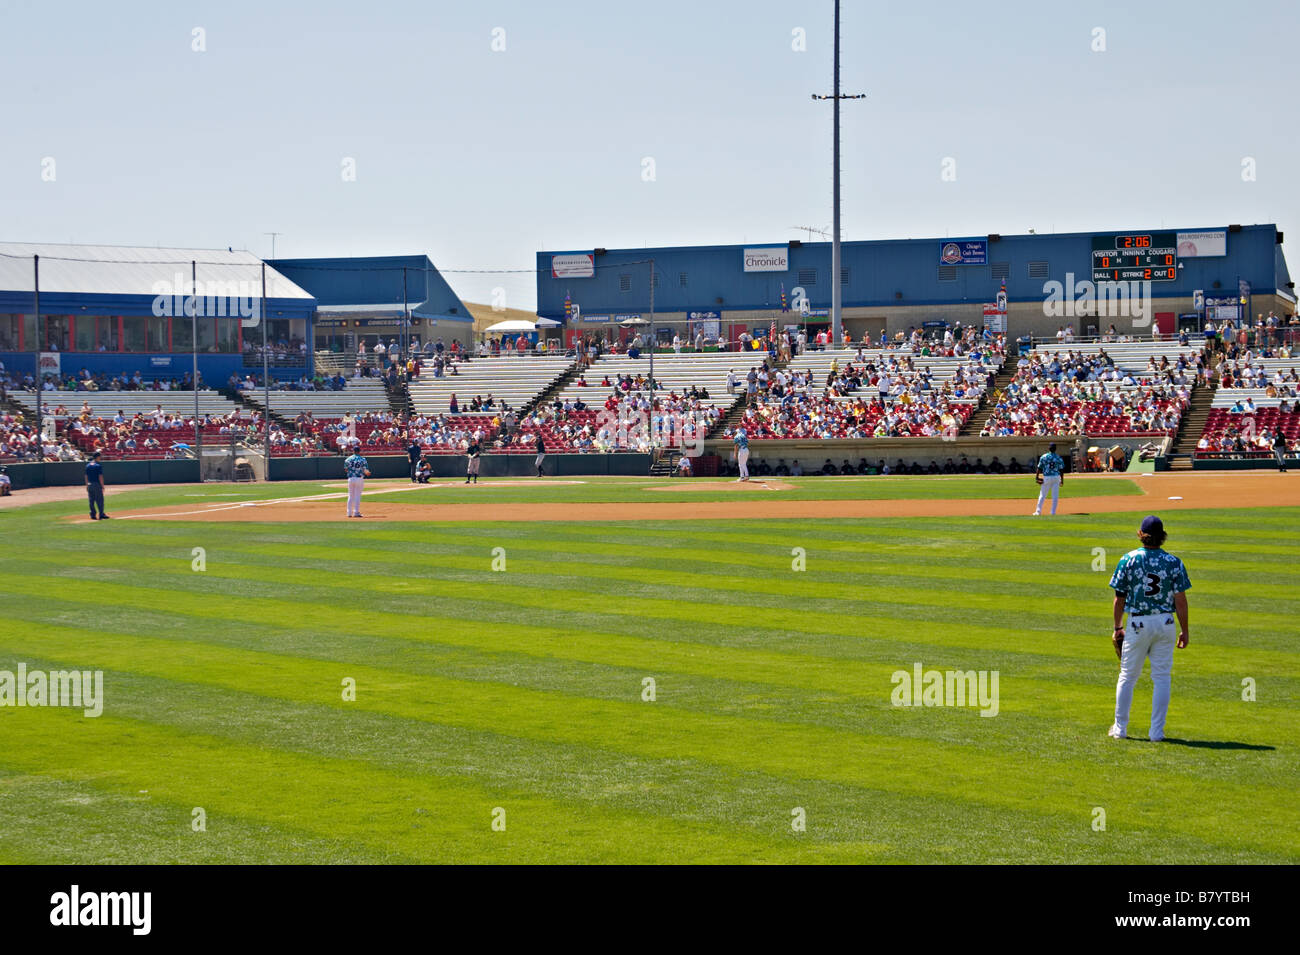 SPORTS Geneva Illinois Kane County Cougars Class A professional baseball team home game stands and field infield - Stock Image